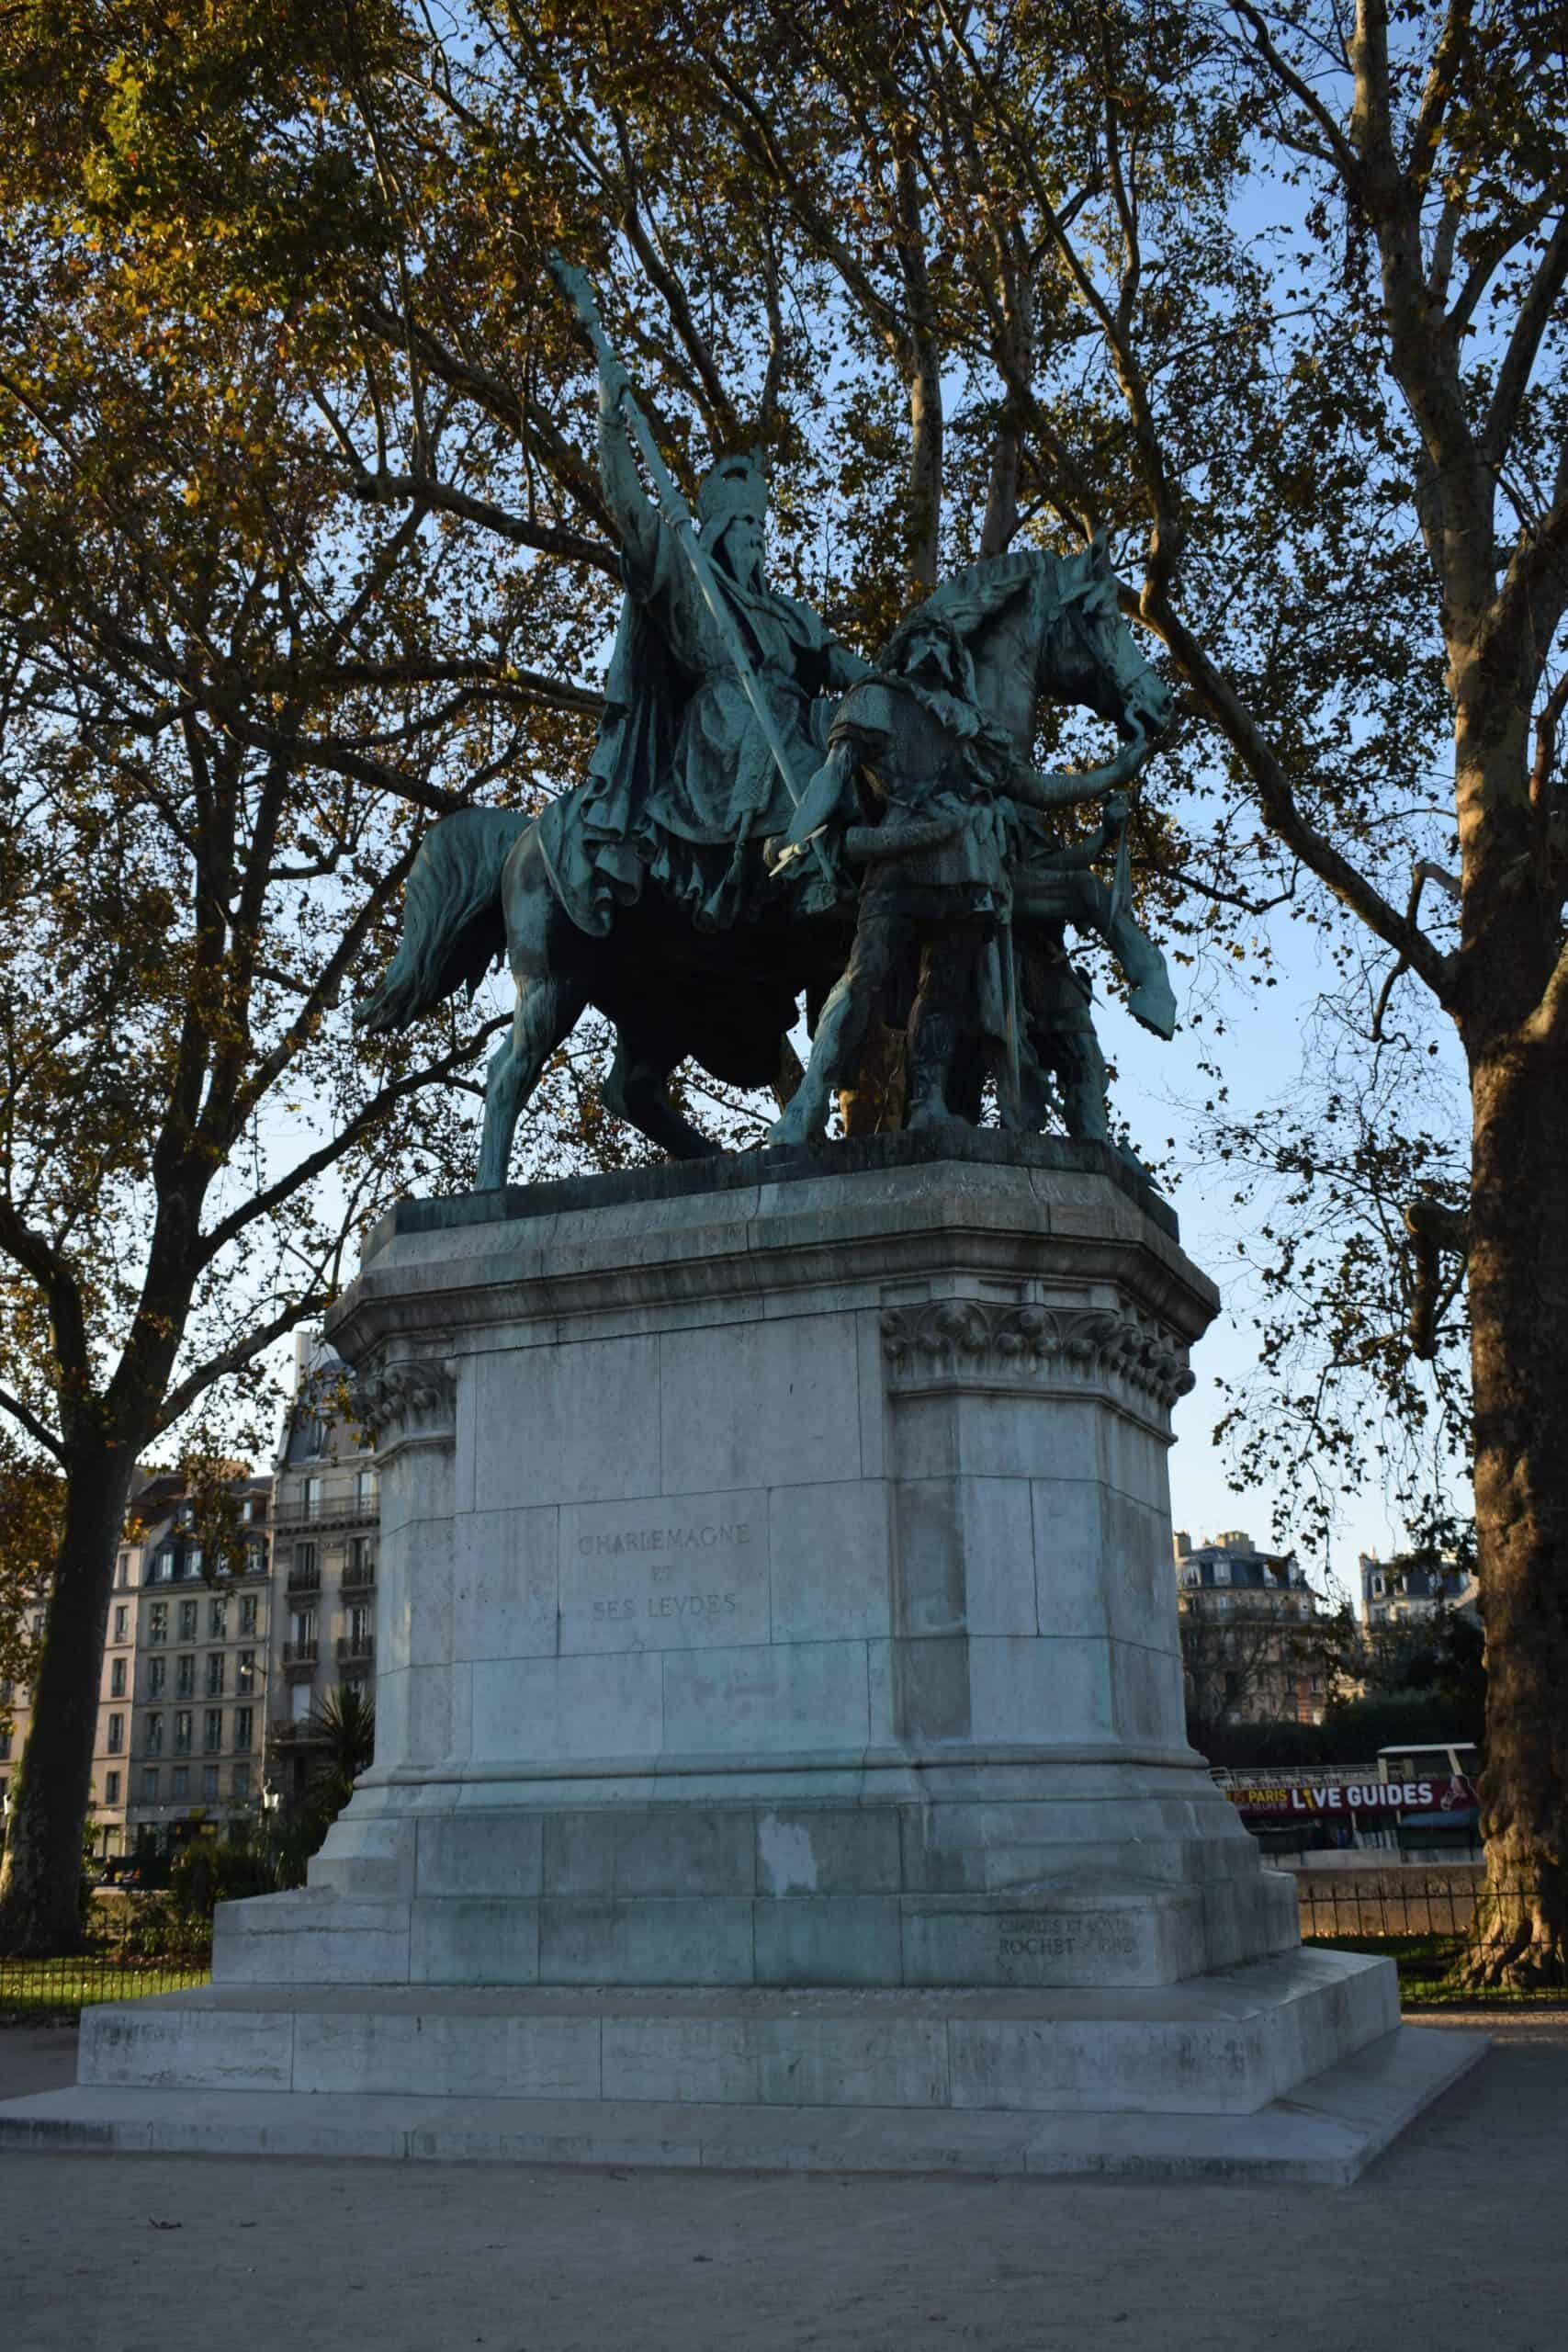 Statue of Charlemagne and His Guards - free audio walking tour of Paris